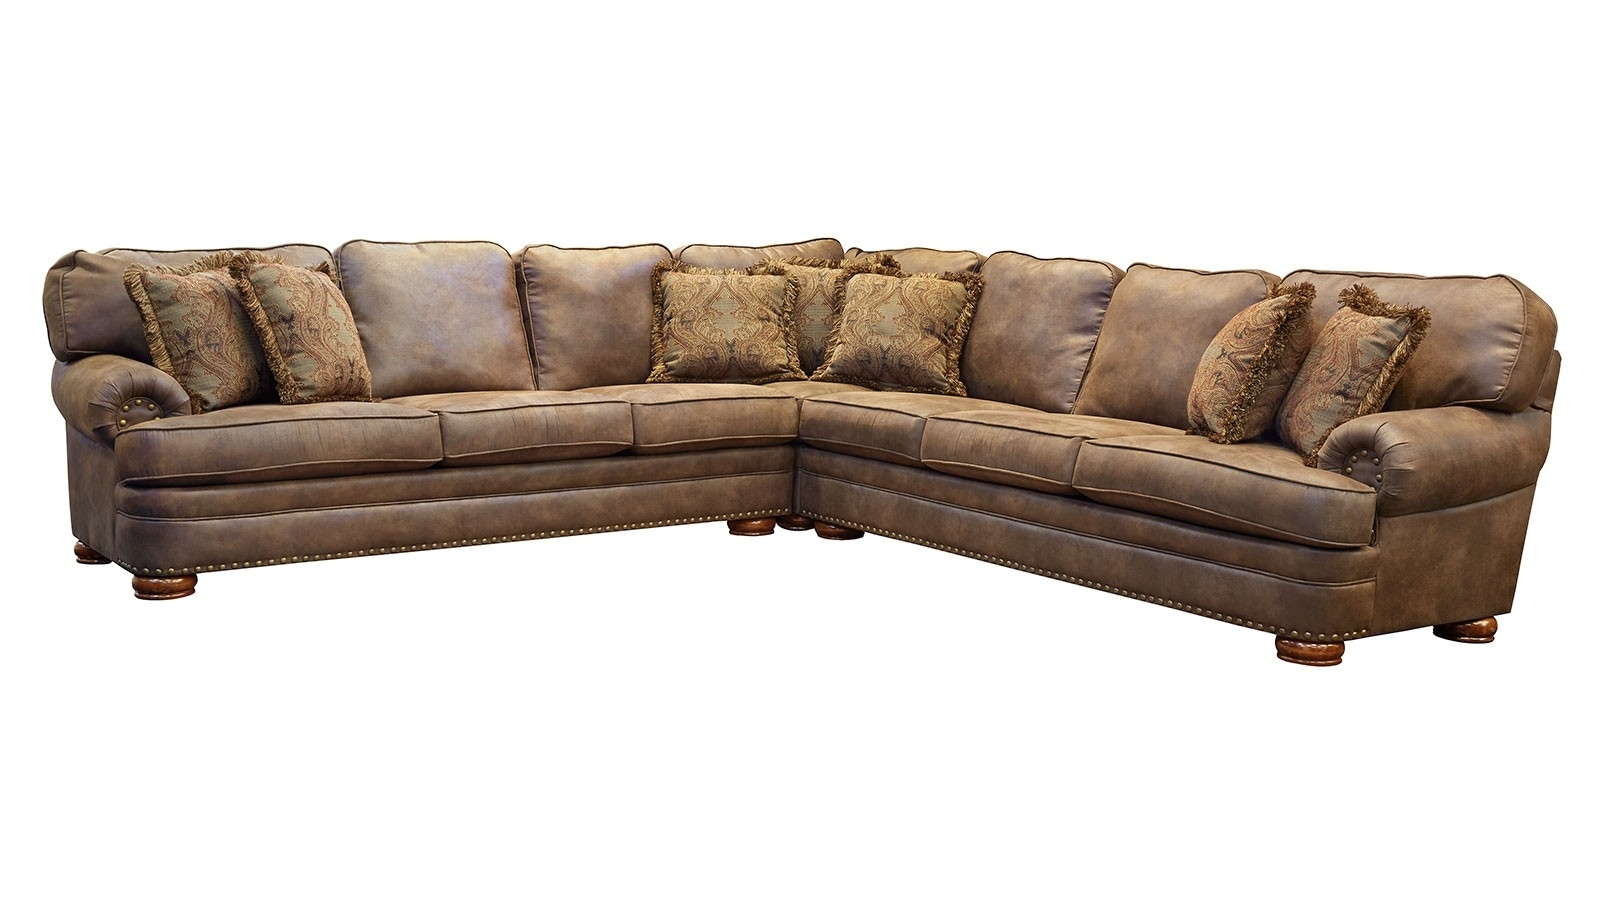 El Paso Sectional | Gallery Furniture Throughout El Paso Tx Sectional Sofas (Image 4 of 10)